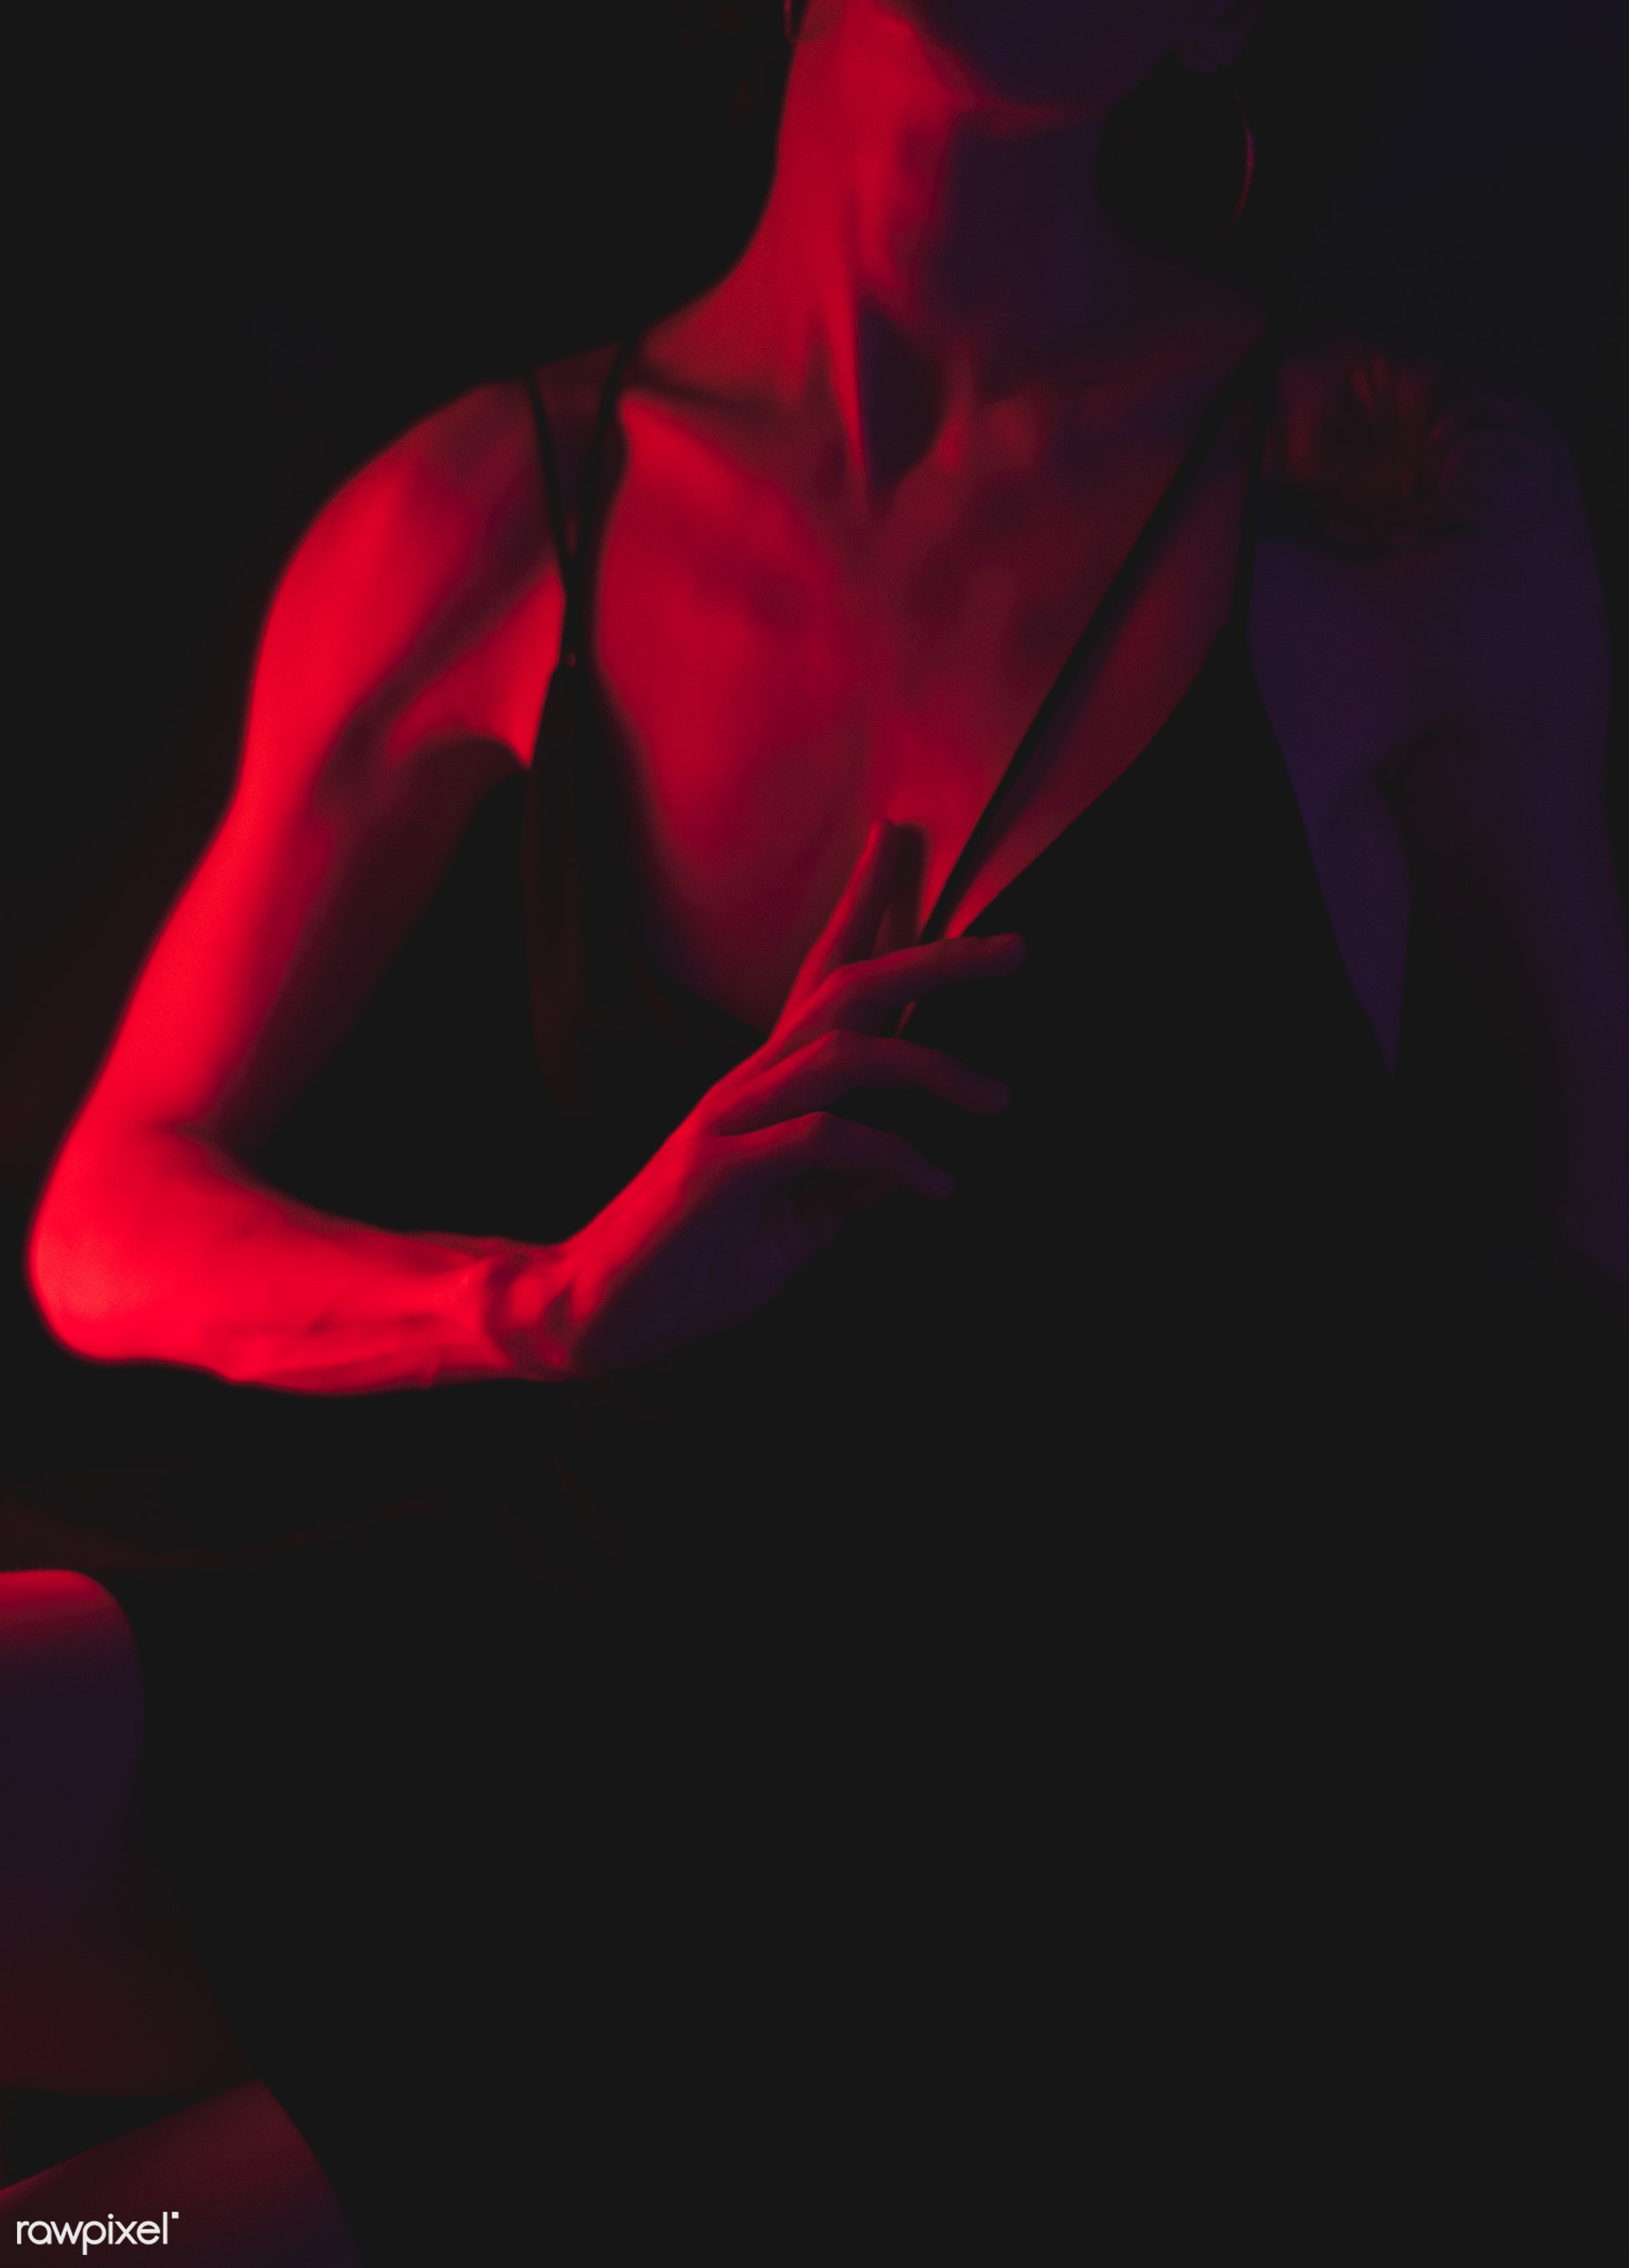 Sensual portrait of a woman - alone, bar, dark, lifestyle, night, night life, night out, one, people, person, portrait, pub...